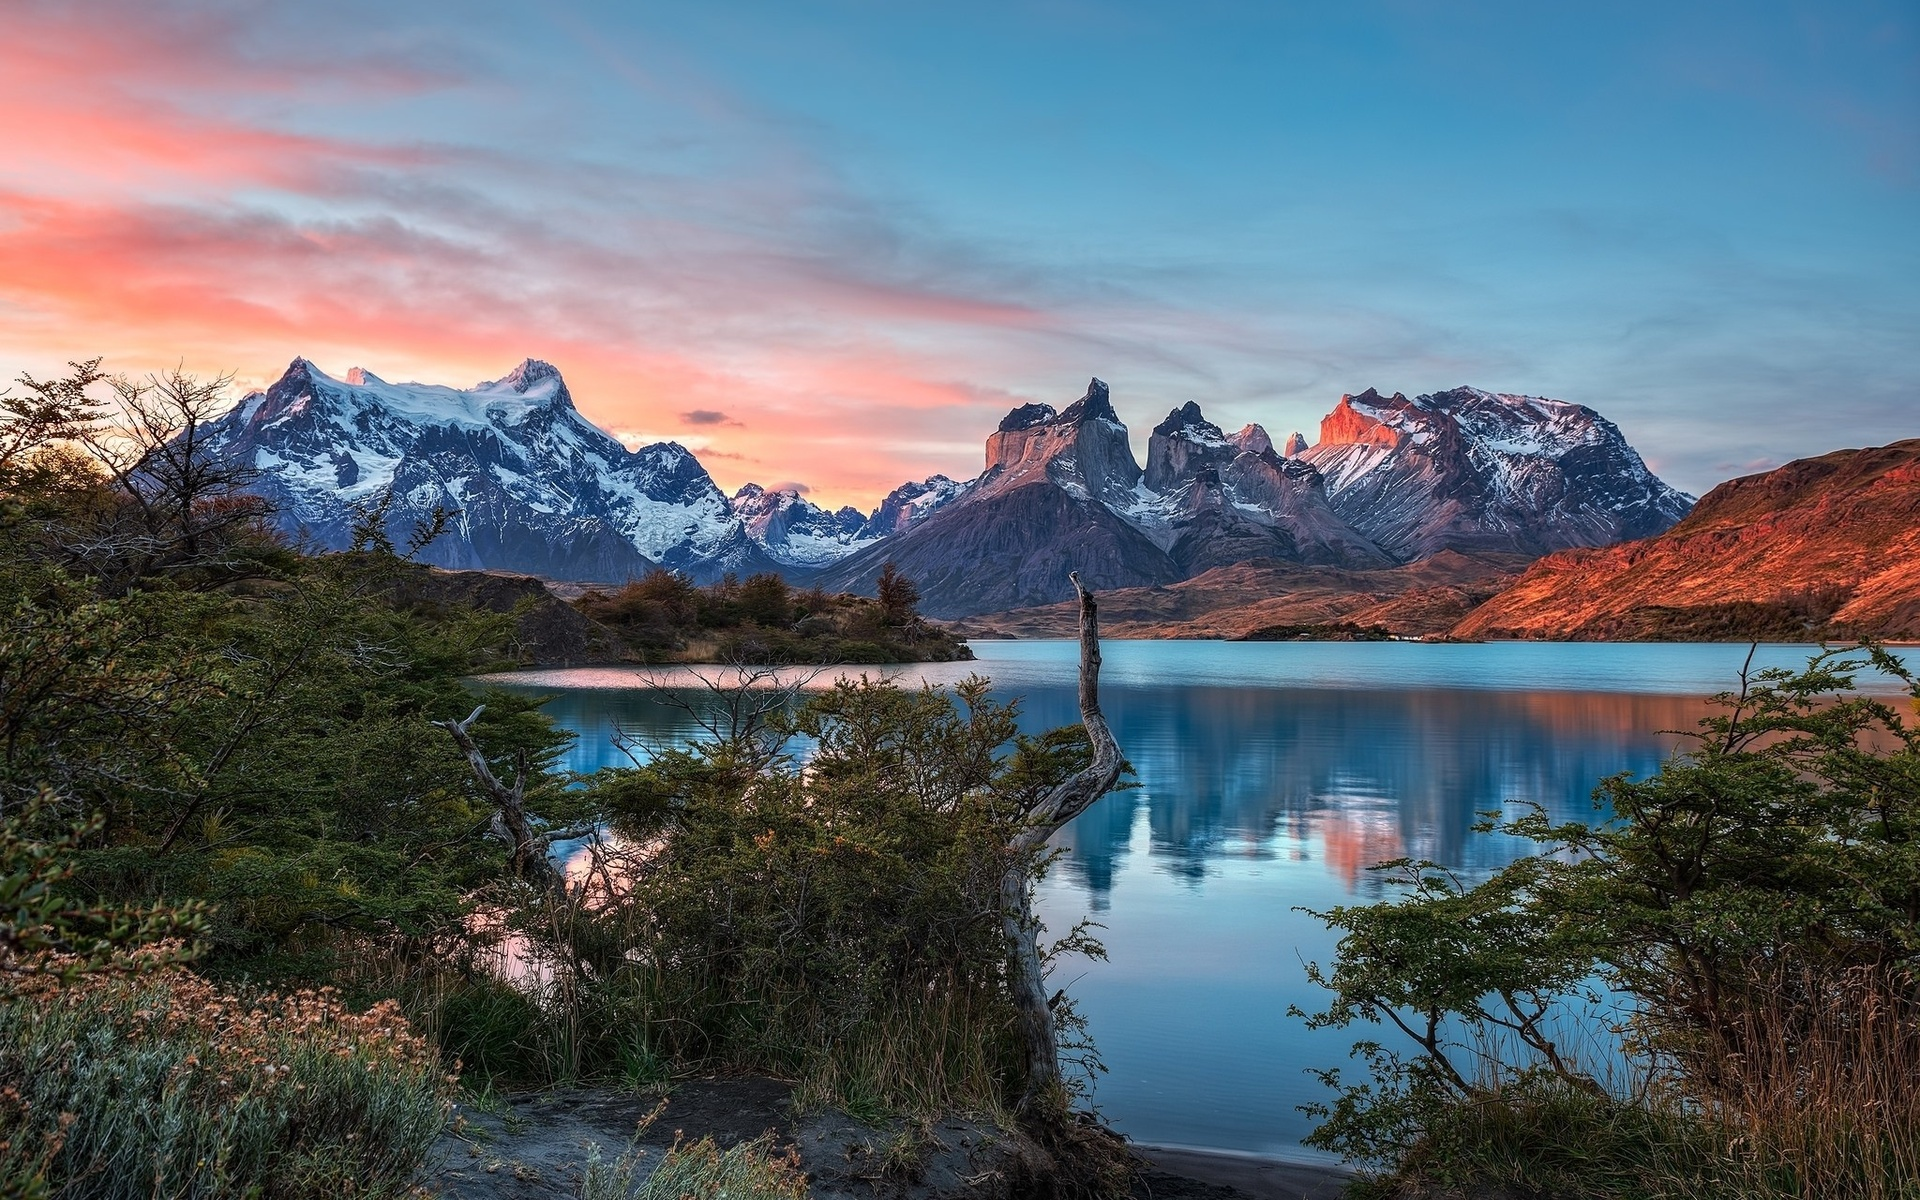 Torres Del Paine Mountains Lake In Chile, Full HD Wallpaper